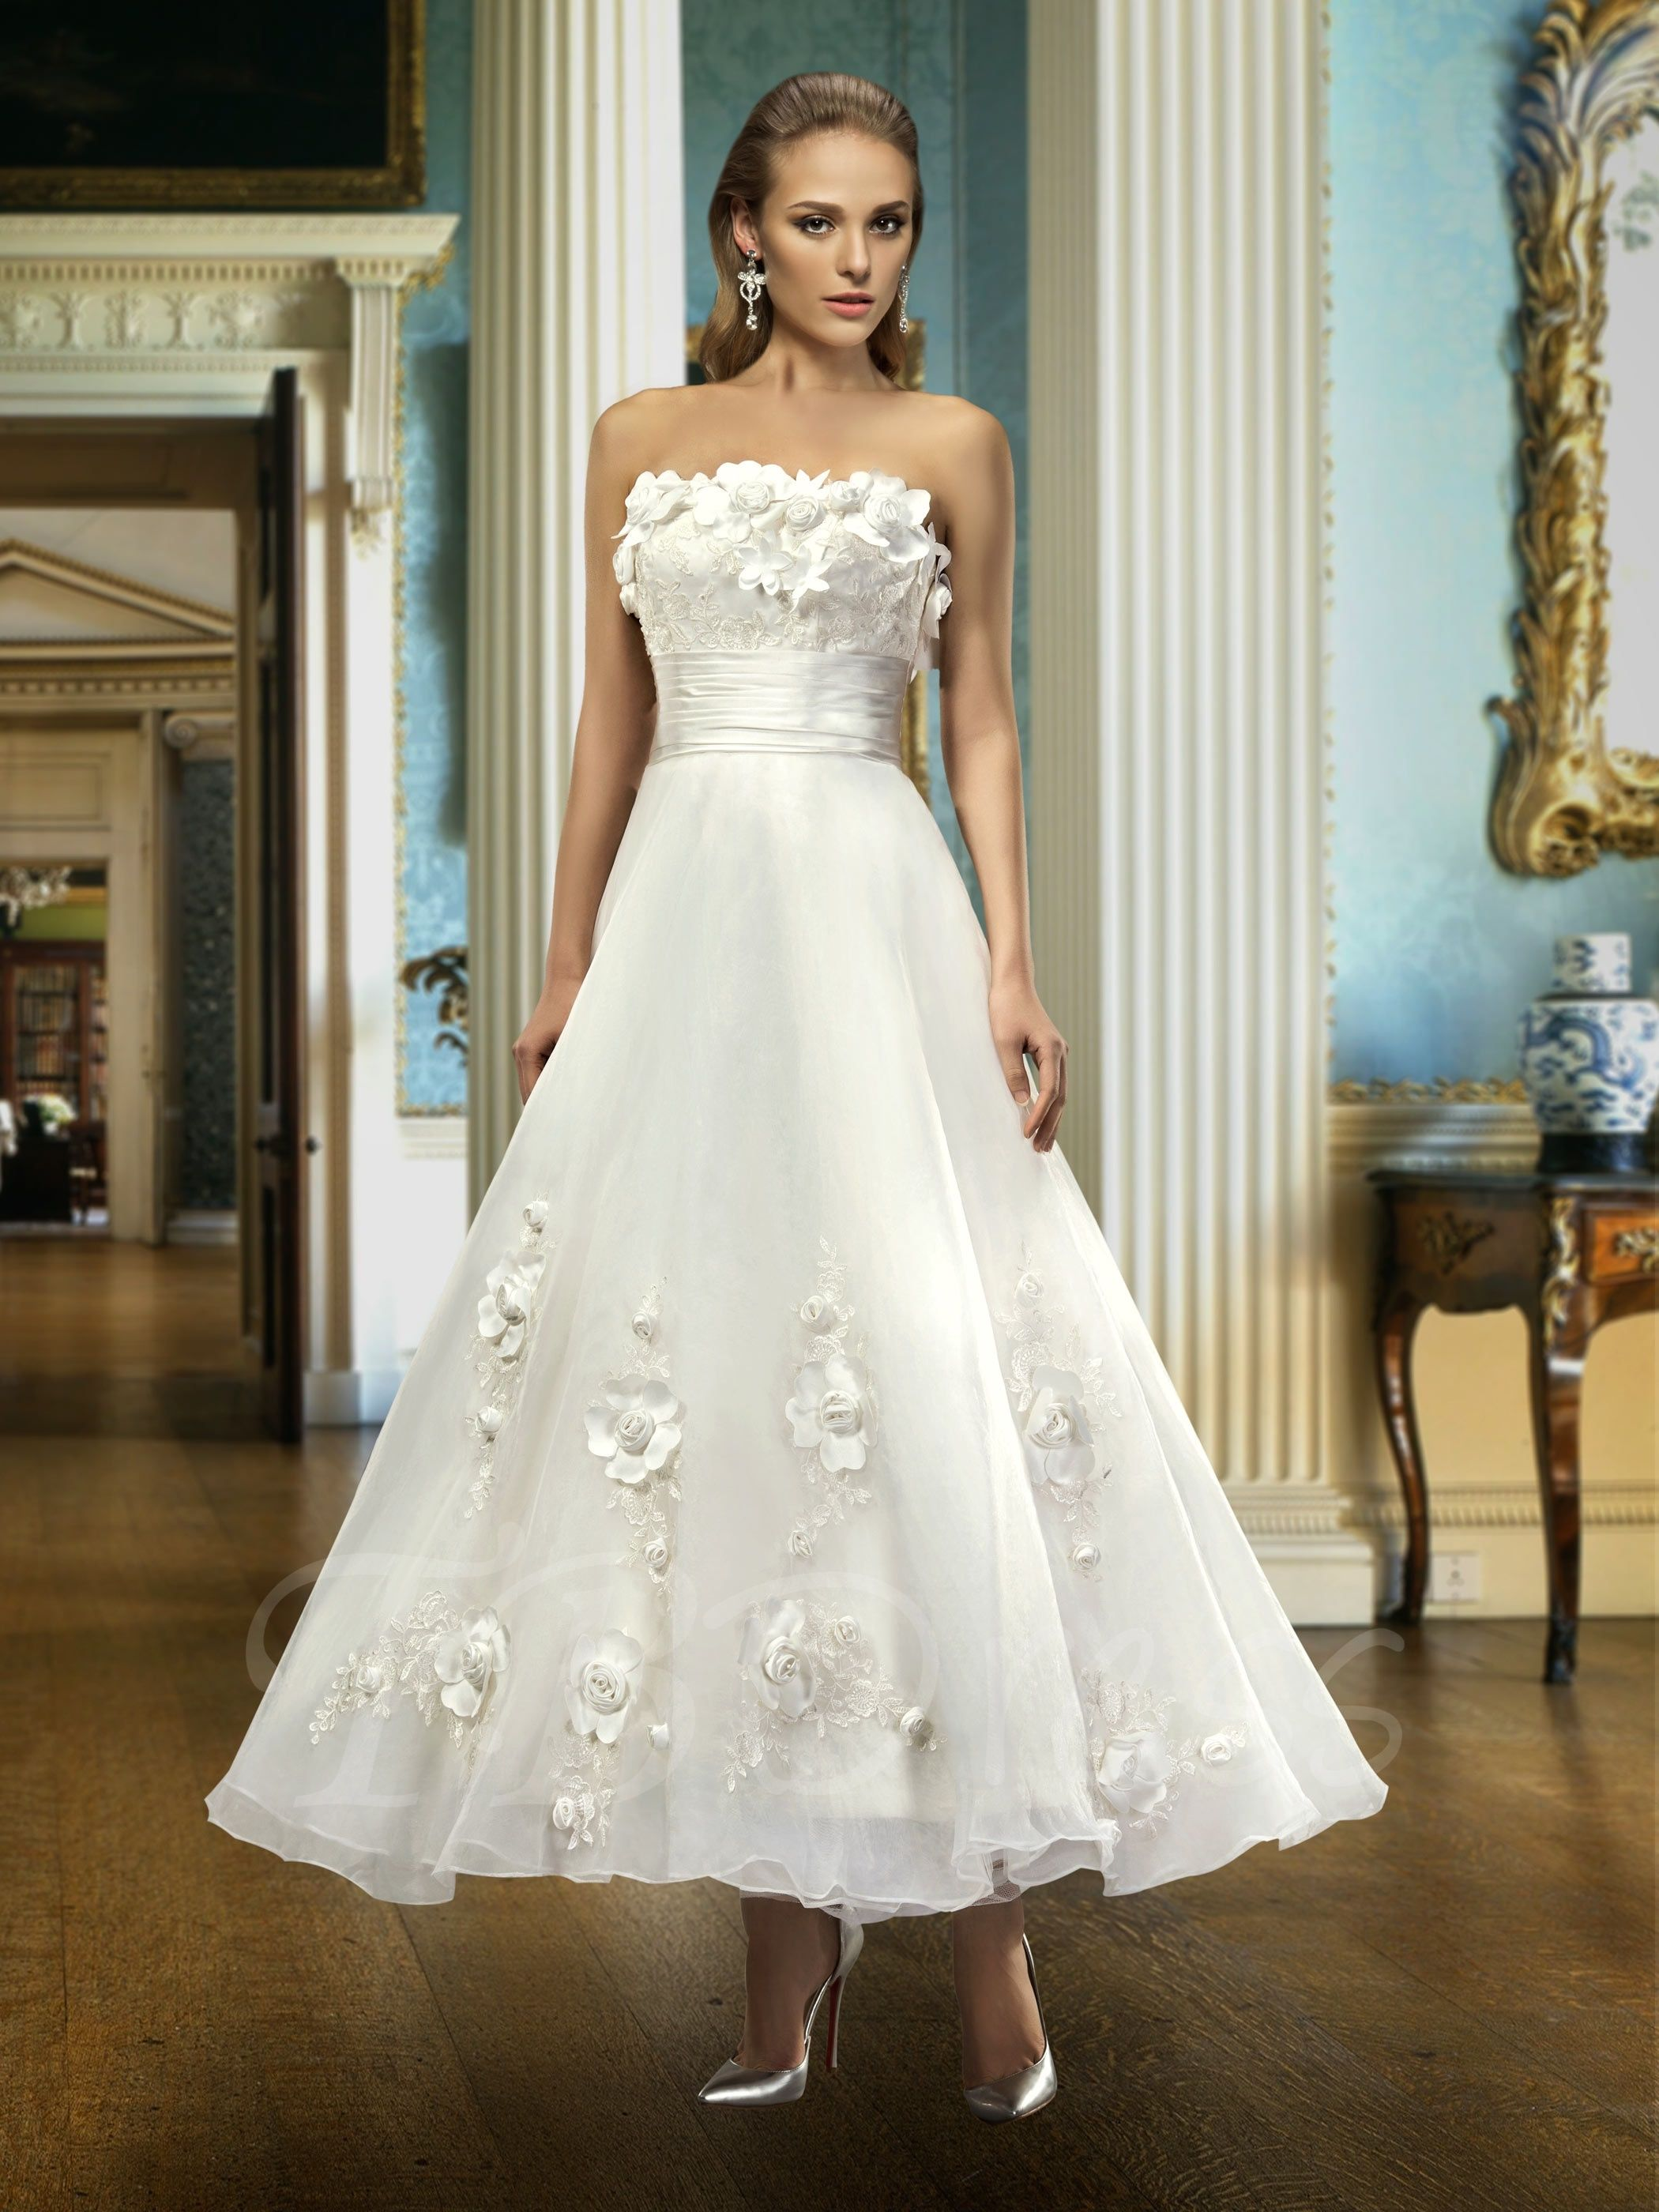 Al a line strapless flowers ankle length wedding dress wedding tbdress offers high quality al a line strapless flowers ankle length wedding ombrellifo Image collections